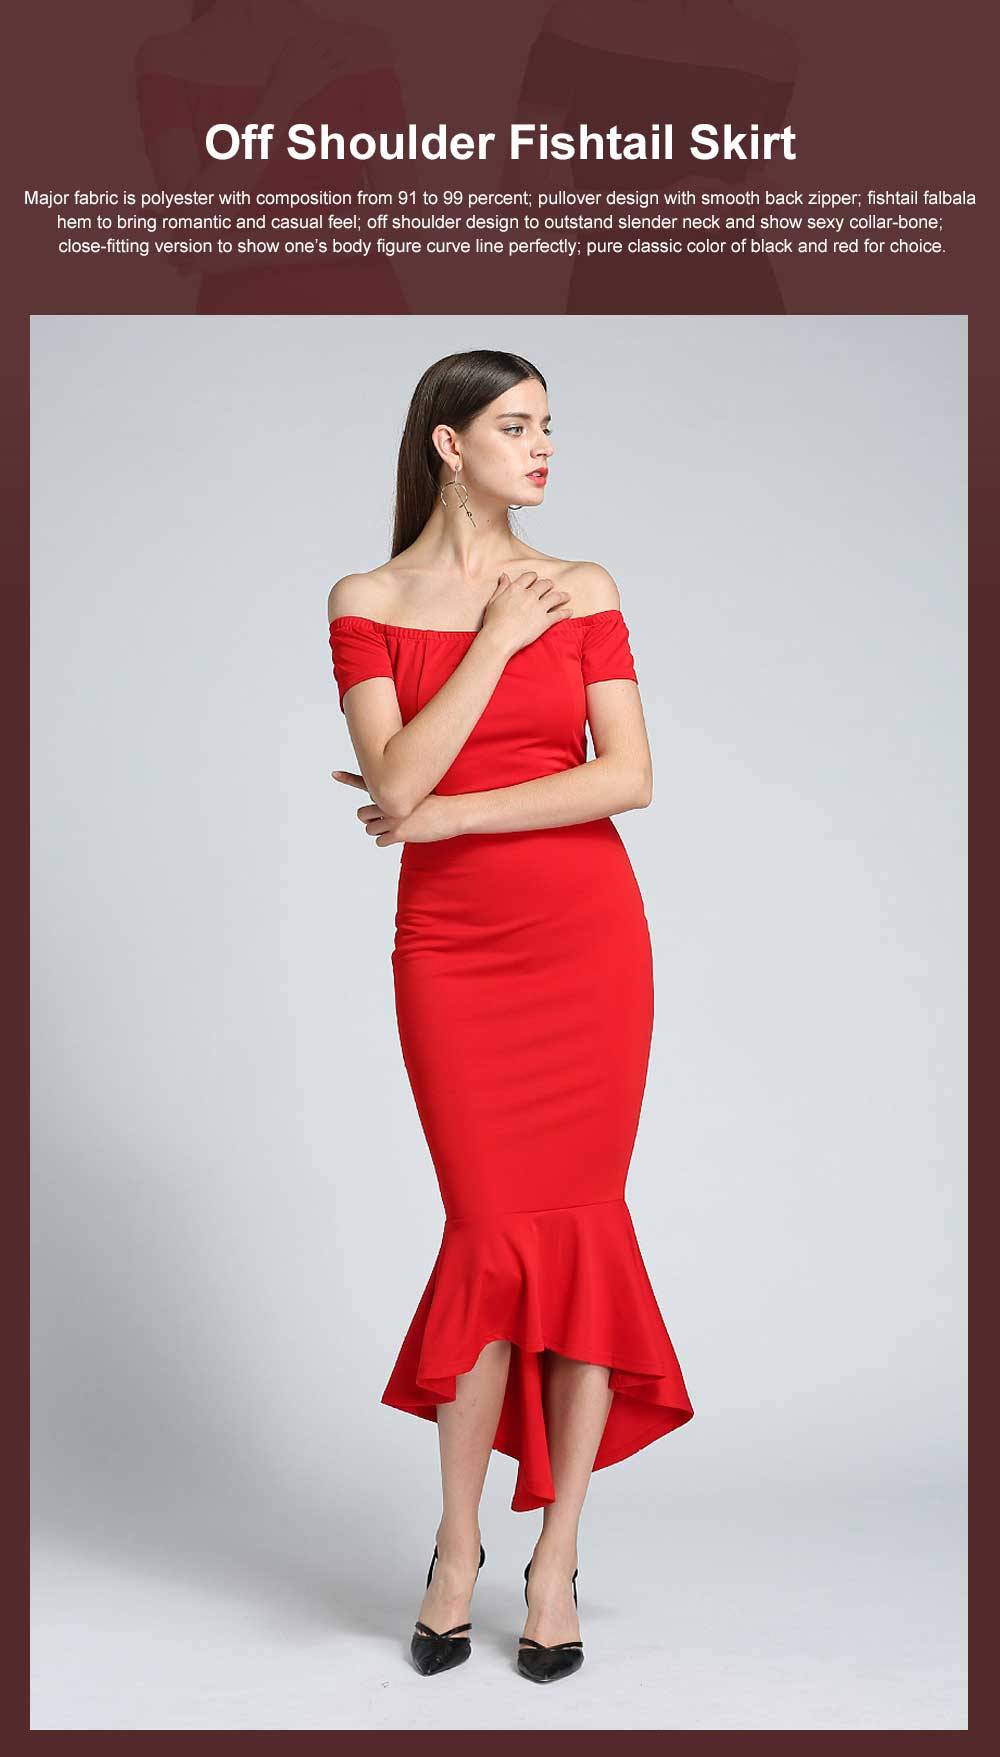 New Style One-piece Dress for Party Western Style Evening Formal Dress Amazon Best-selling Off Shoulder Short Sleeve Fishtail Skirt Evening Dress 0